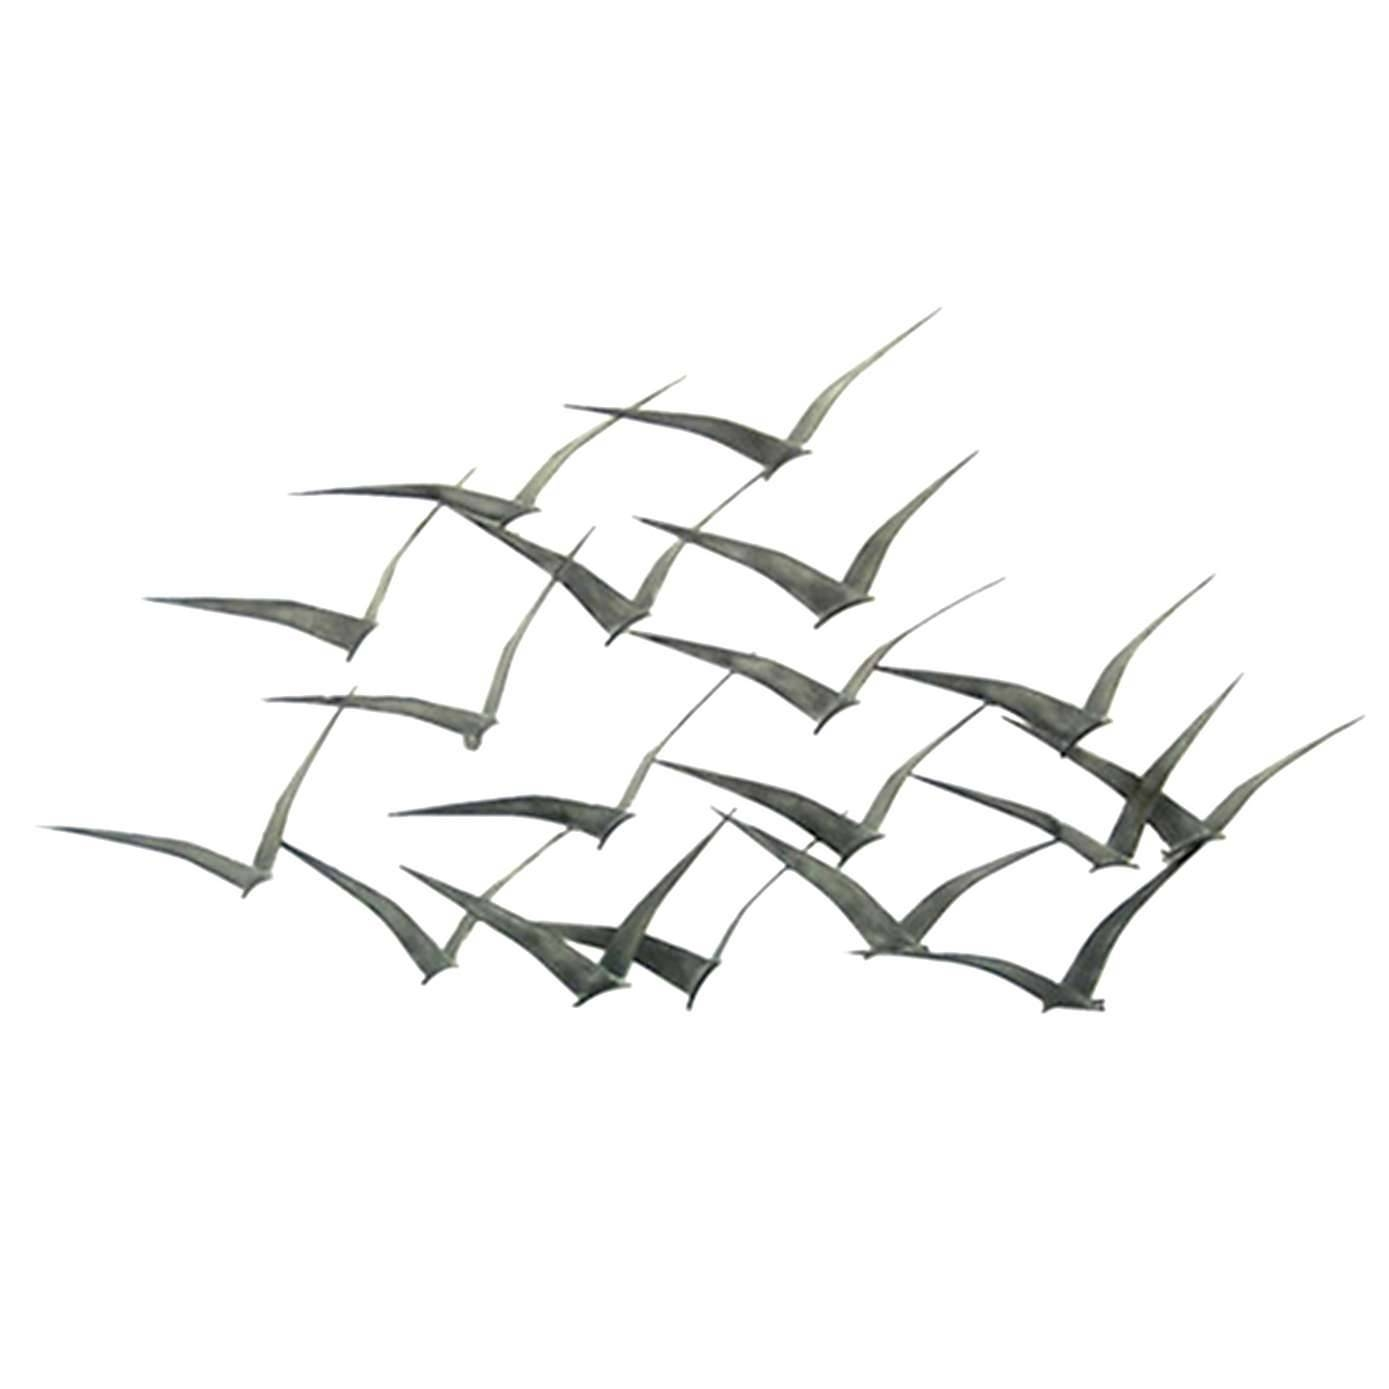 Appealing Lady Bird Metal Wall Art Gigantic Metal Flying Bird Wall With Regard To Current Flying Birds Metal Wall Art (View 1 of 25)